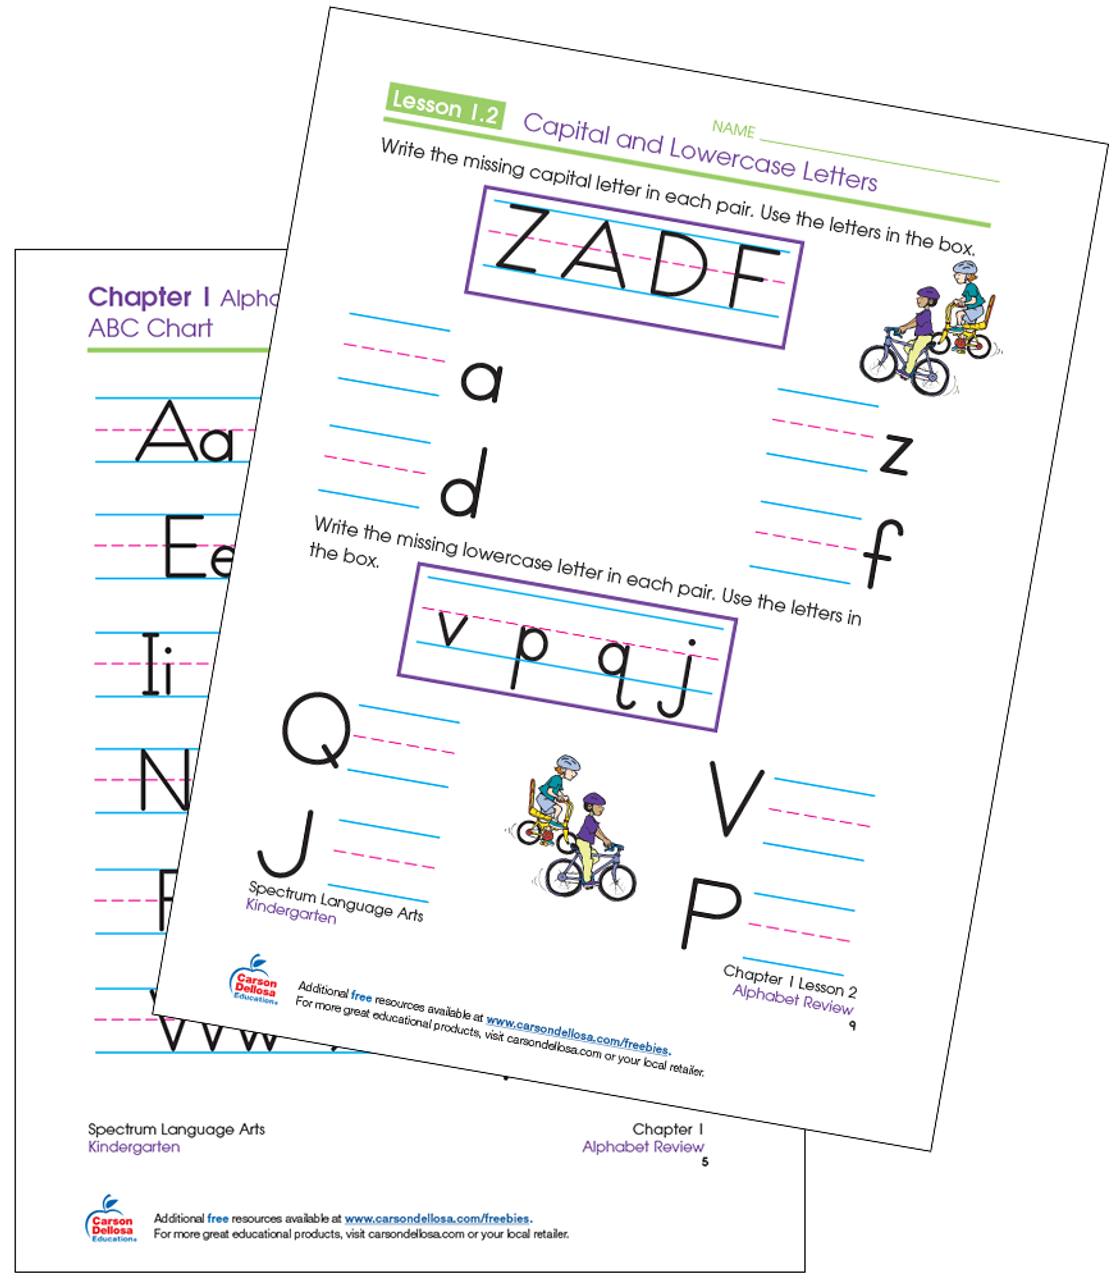 image regarding Free Printable Alphabet Letters Upper and Lower Case named Crafting Funds and Lowercase Letters Kindergarten Totally free